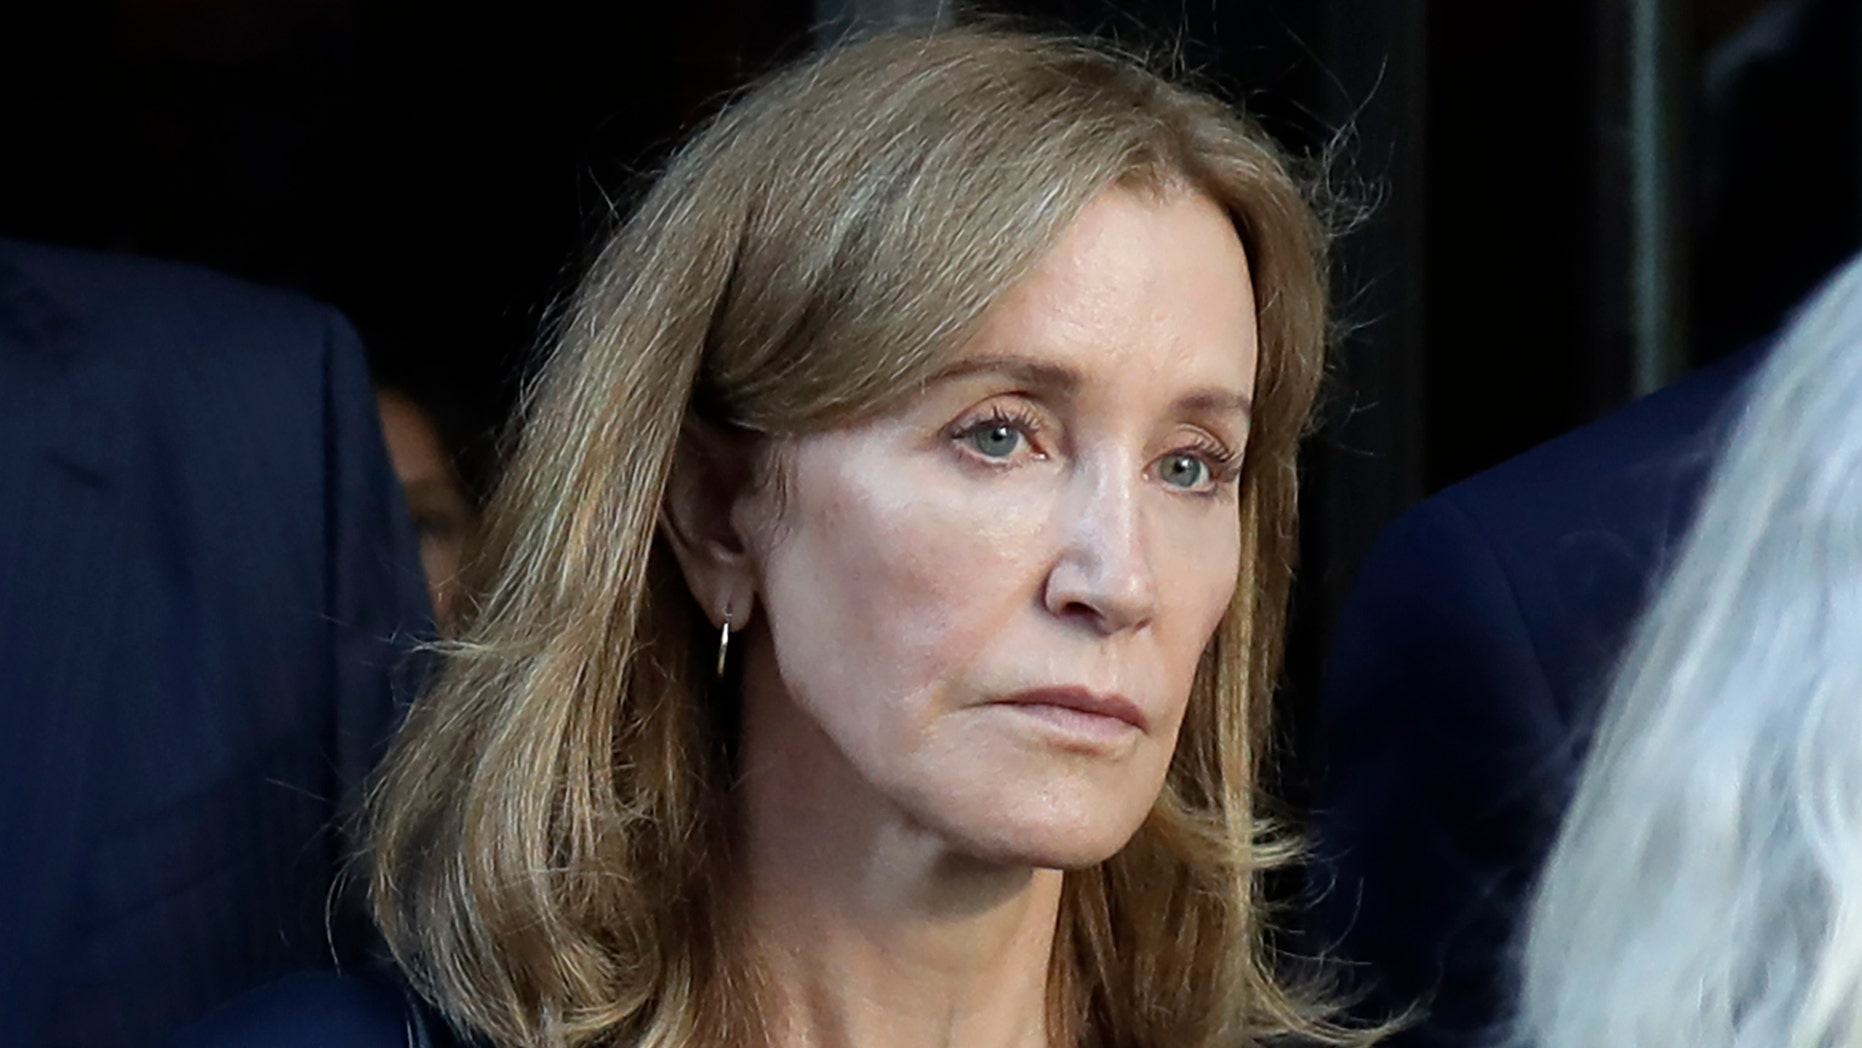 Felicity Huffman leaves federal court after her sentencing in a nationwide college admissions bribery scandal, Friday, Sept. 13, 2019, in Boston. (AP)